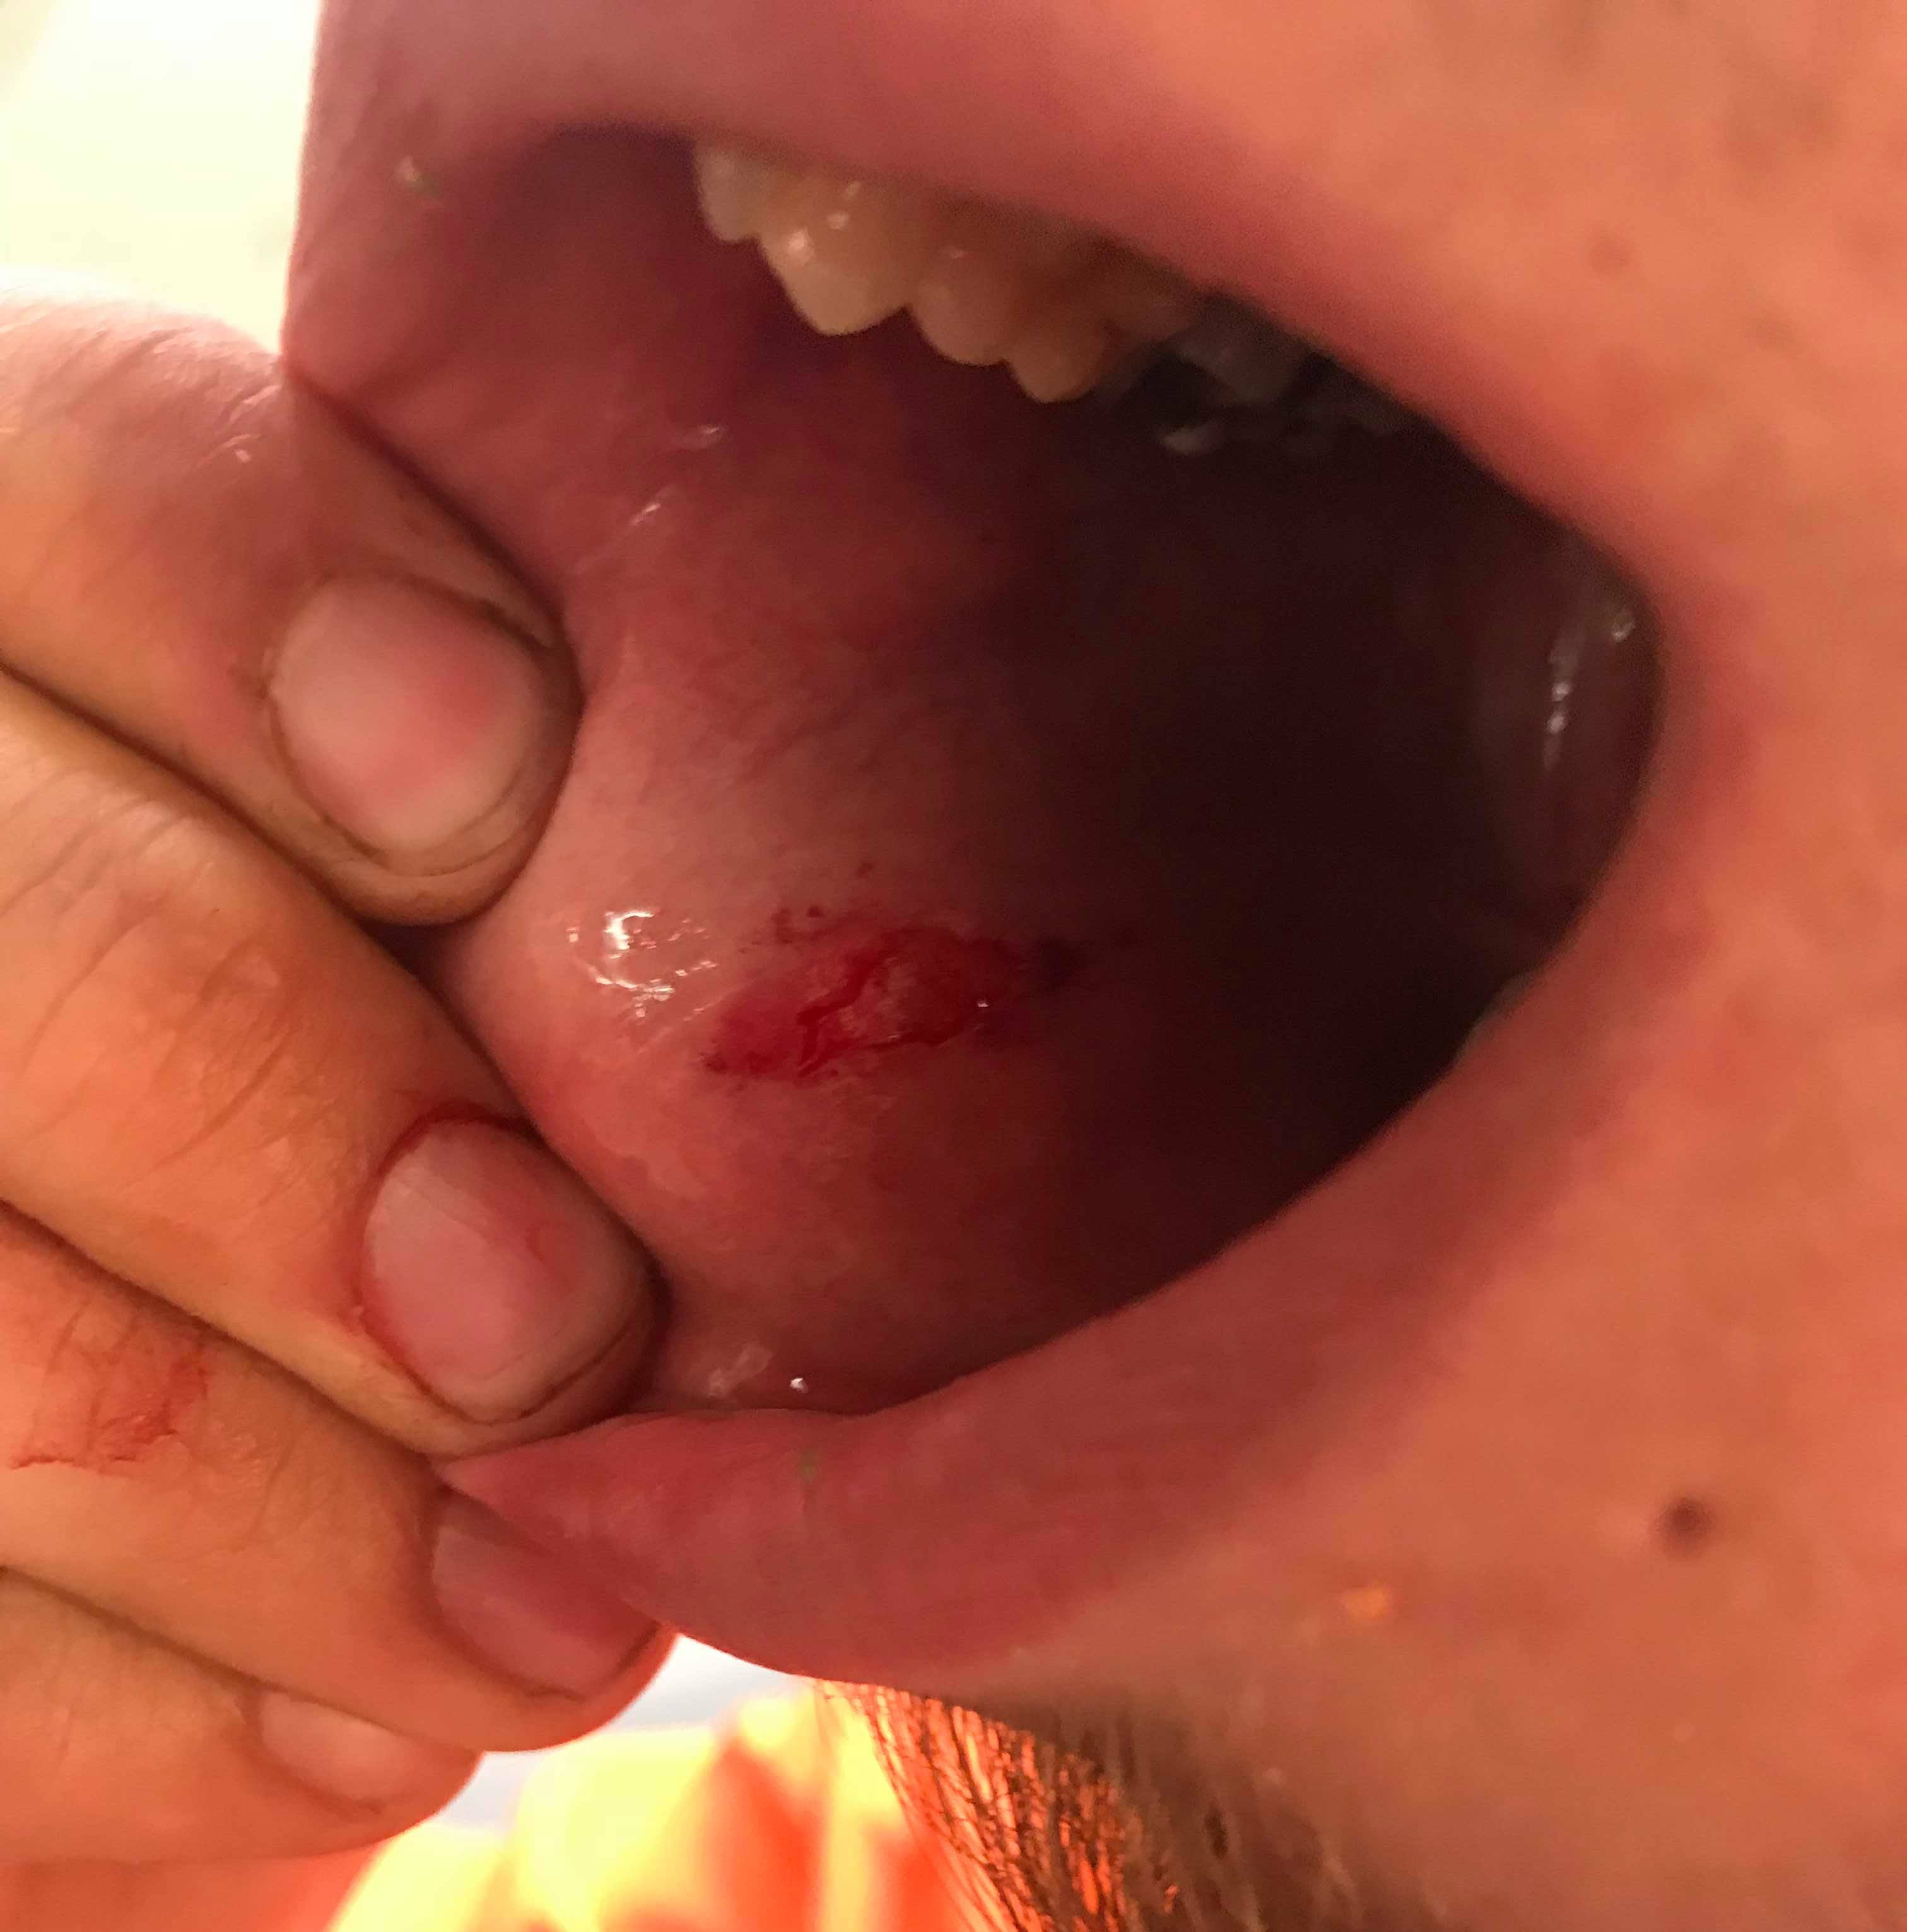 Man claims mouth 'filled with blood' after trying Dragon Breath at Haywood Mall